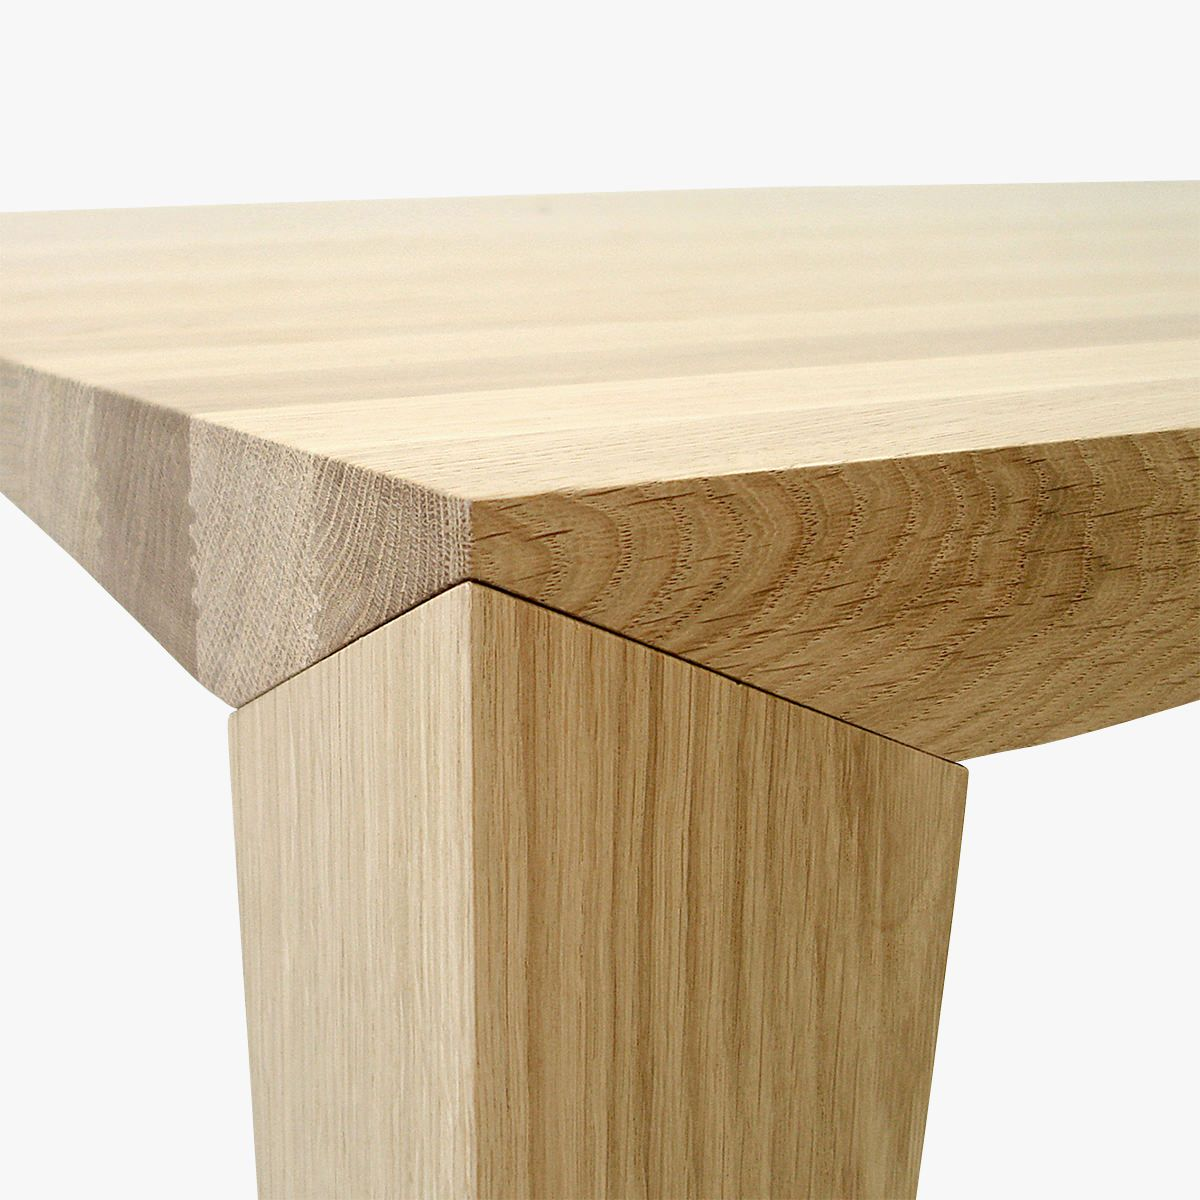 Great Detail Of The Johansen Table By Mads Johansen For Snedkergaarden.